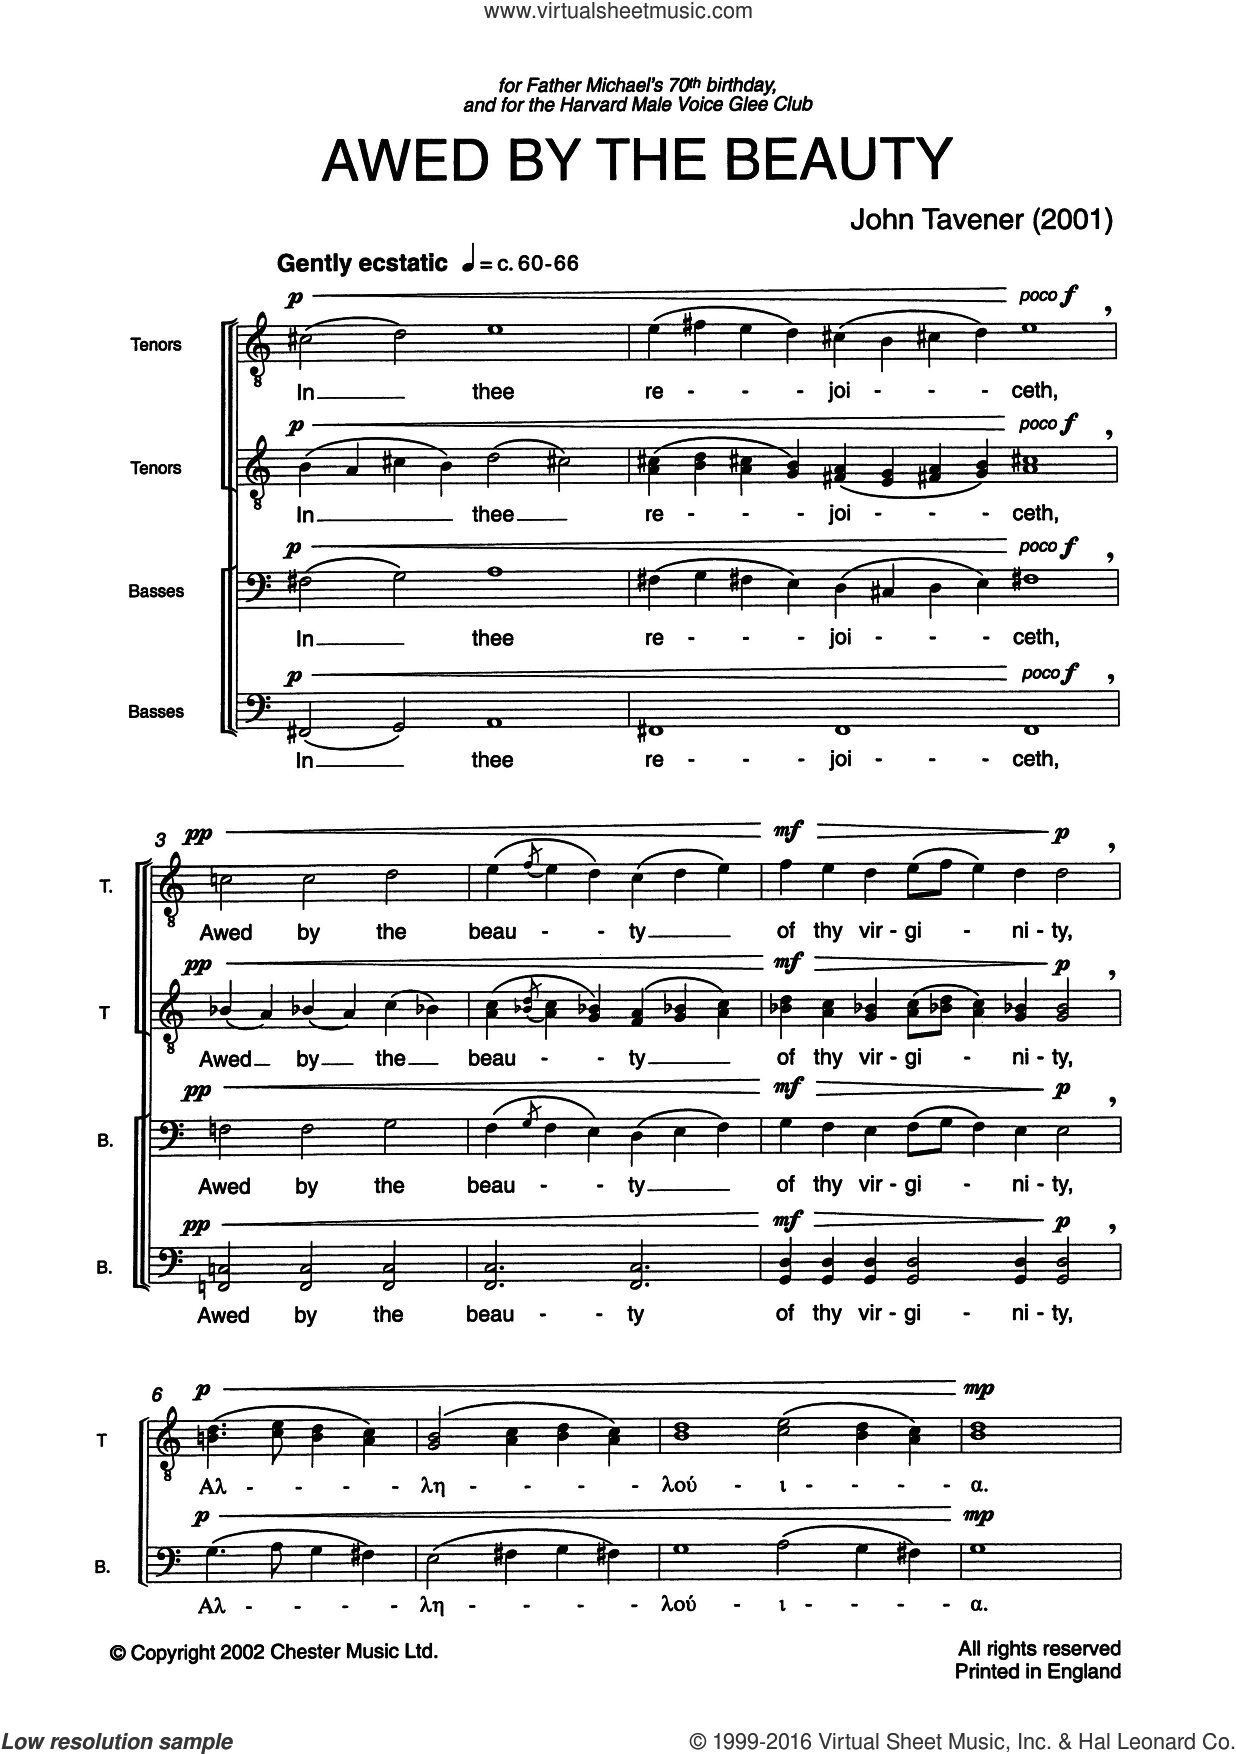 Awed By The Beauty sheet music for voice, piano or guitar by Liturgical Text and John Tavener. Score Image Preview.